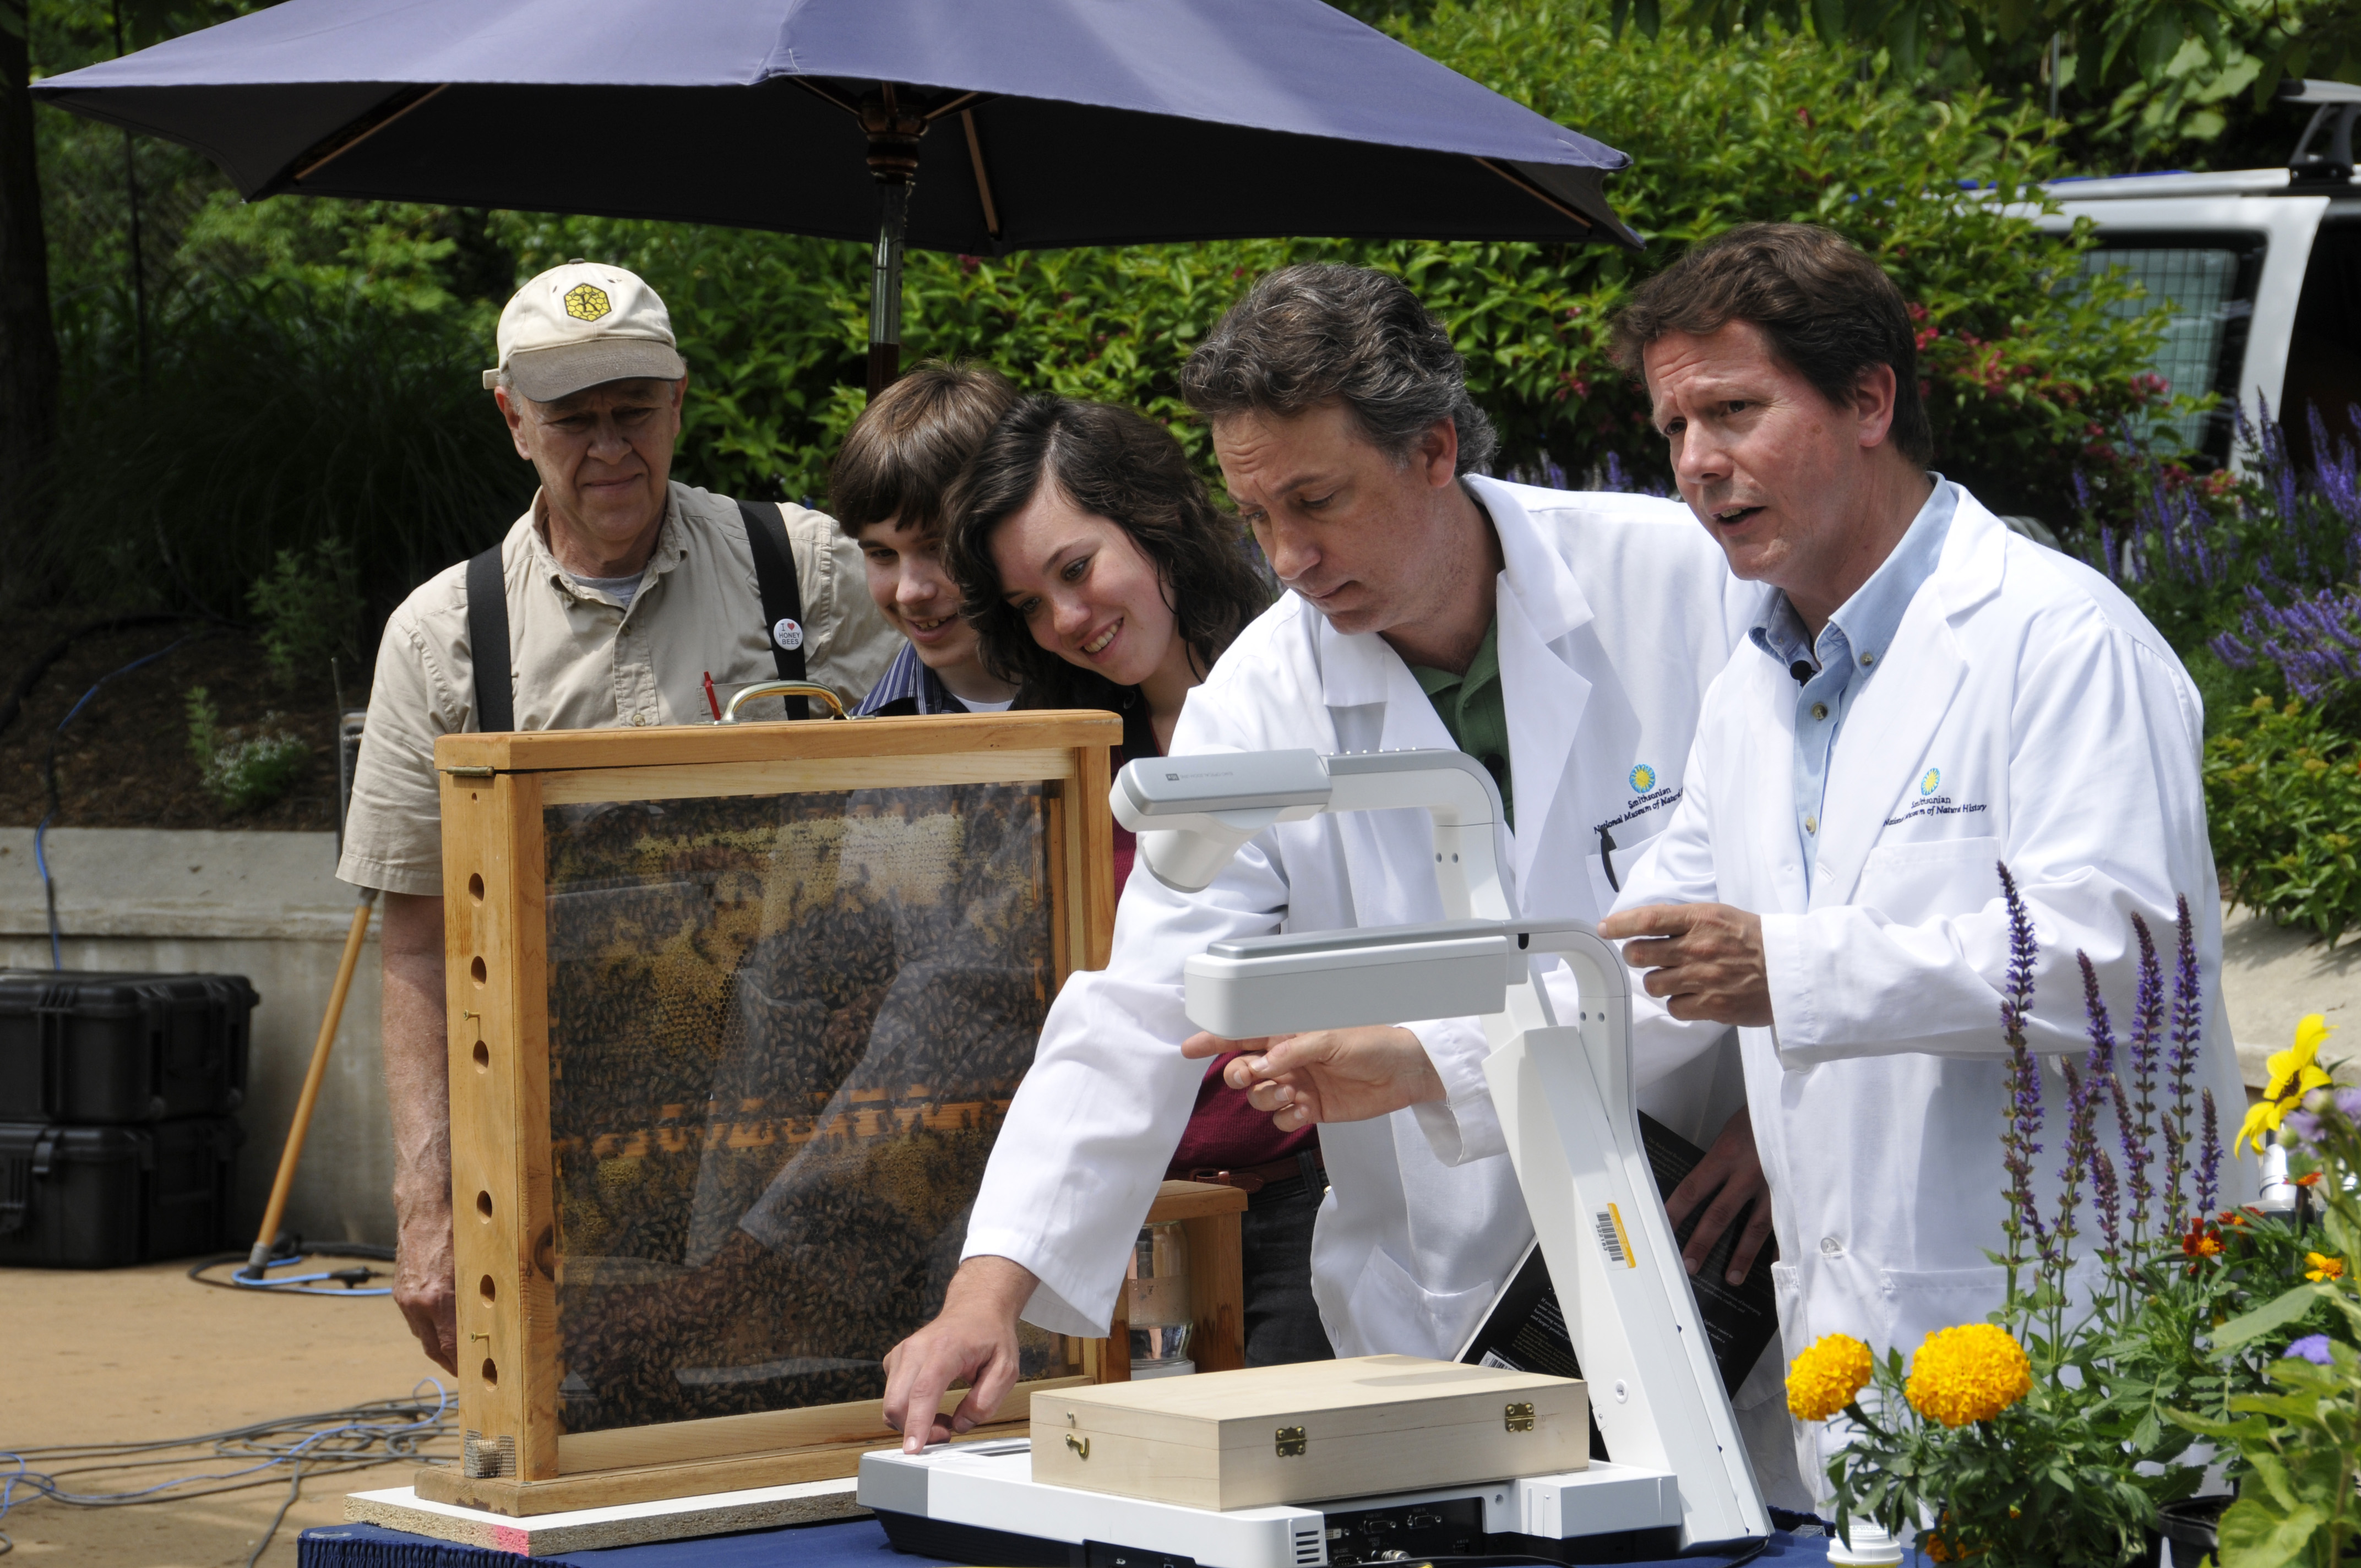 bee hive and scientists